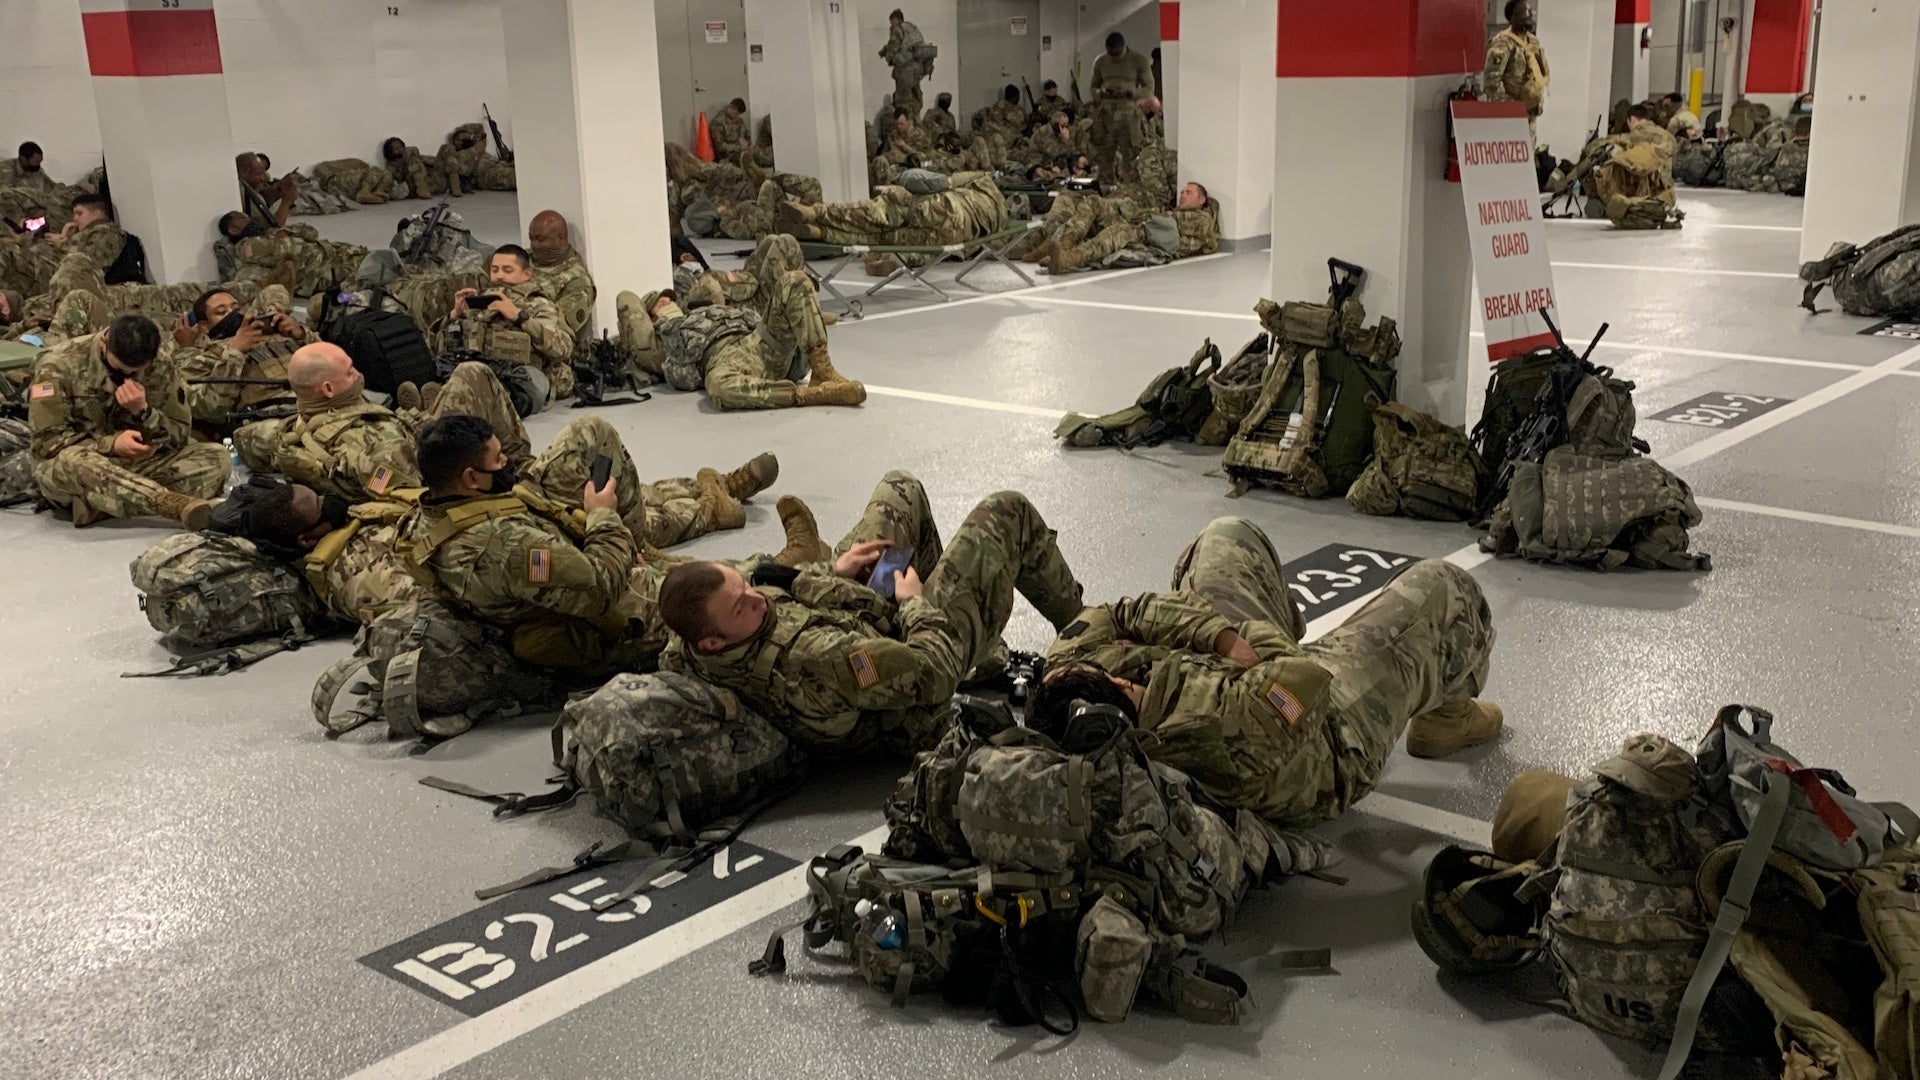 National Guard members forced to sleep in parking garage following Biden inauguration